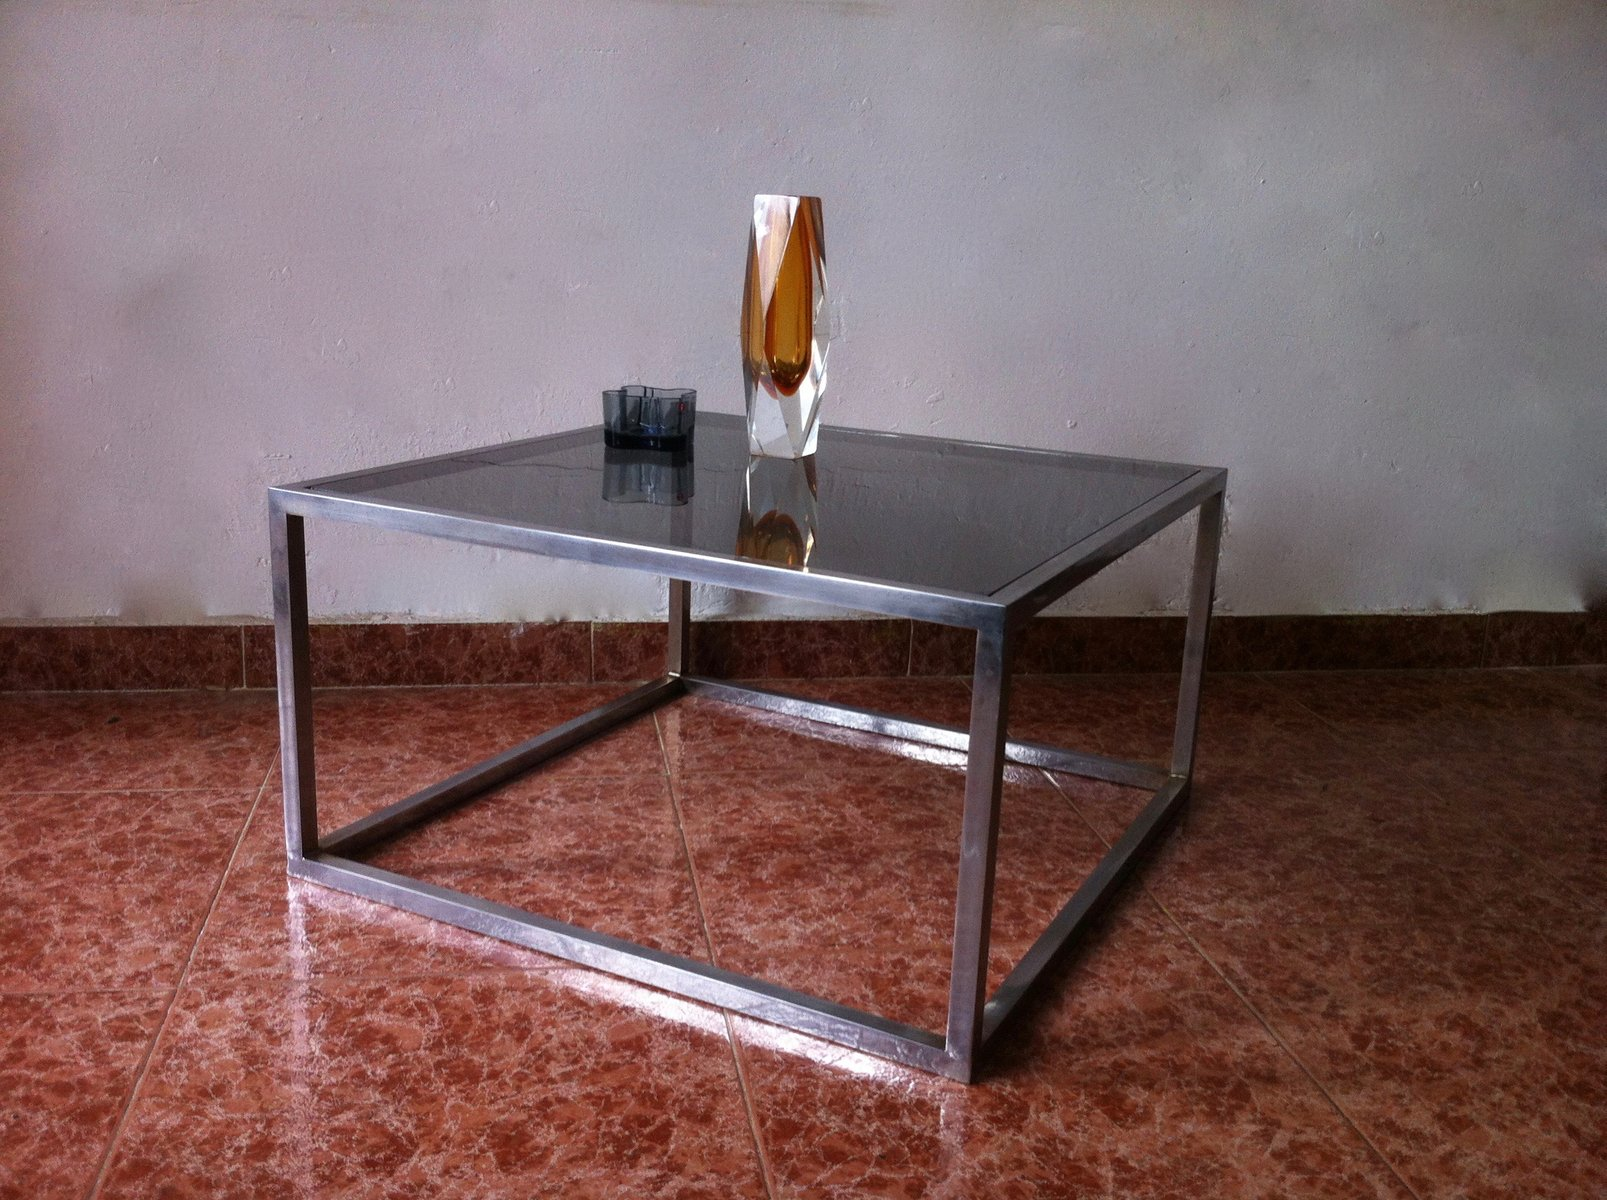 Vintage square smoked glass aluminum coffee table 1960s for vintage square smoked glass aluminum coffee table 1960s for sale at pamono geotapseo Gallery